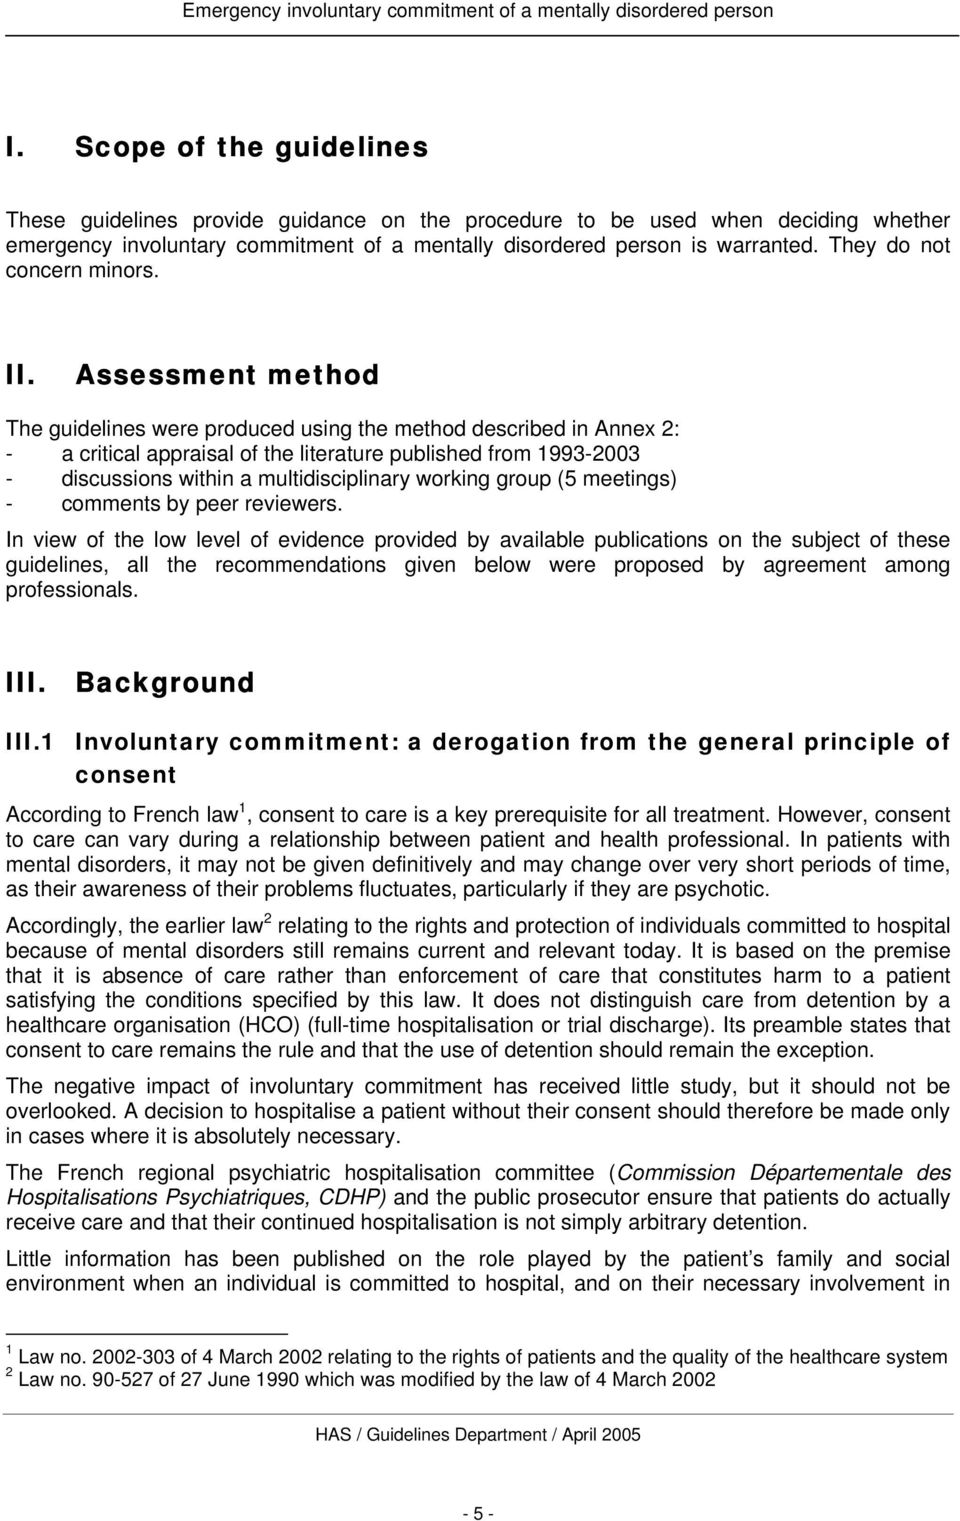 Assessment method The guidelines were produced using the method described in Annex 2: - a critical appraisal of the literature published from 1993-2003 - discussions within a multidisciplinary